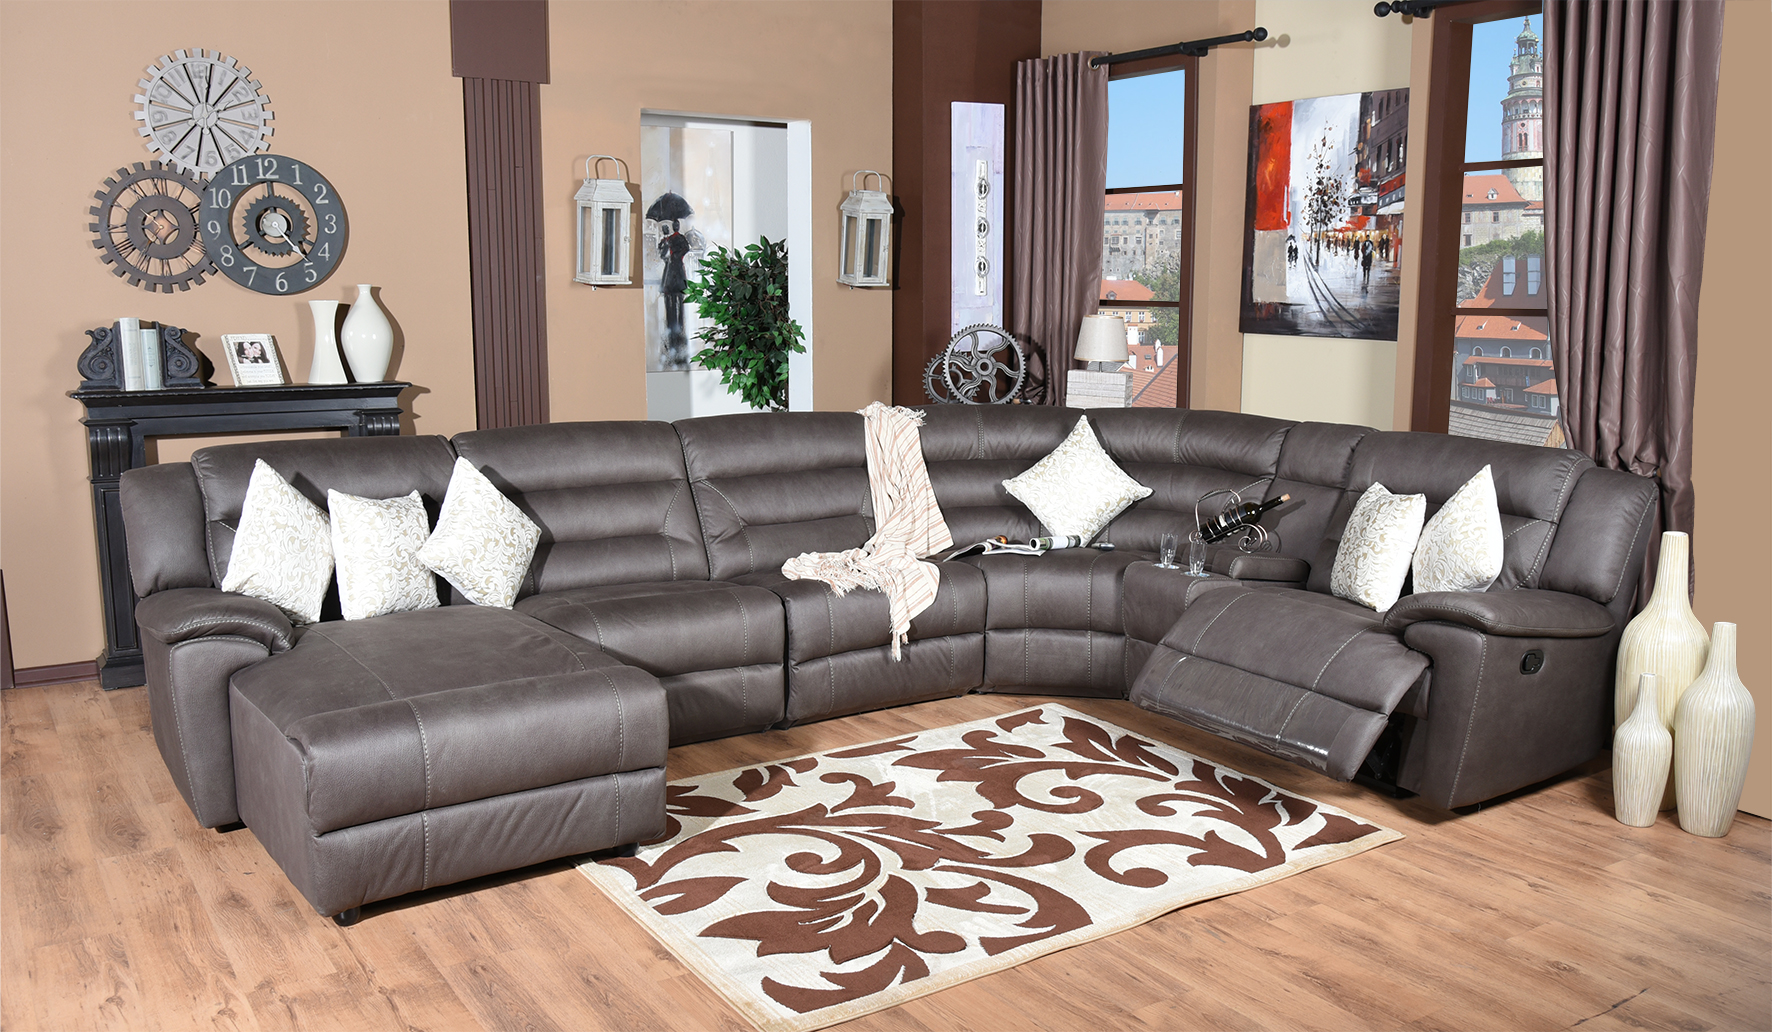 corner grey home sofa textiles holloways sofas couch and couches